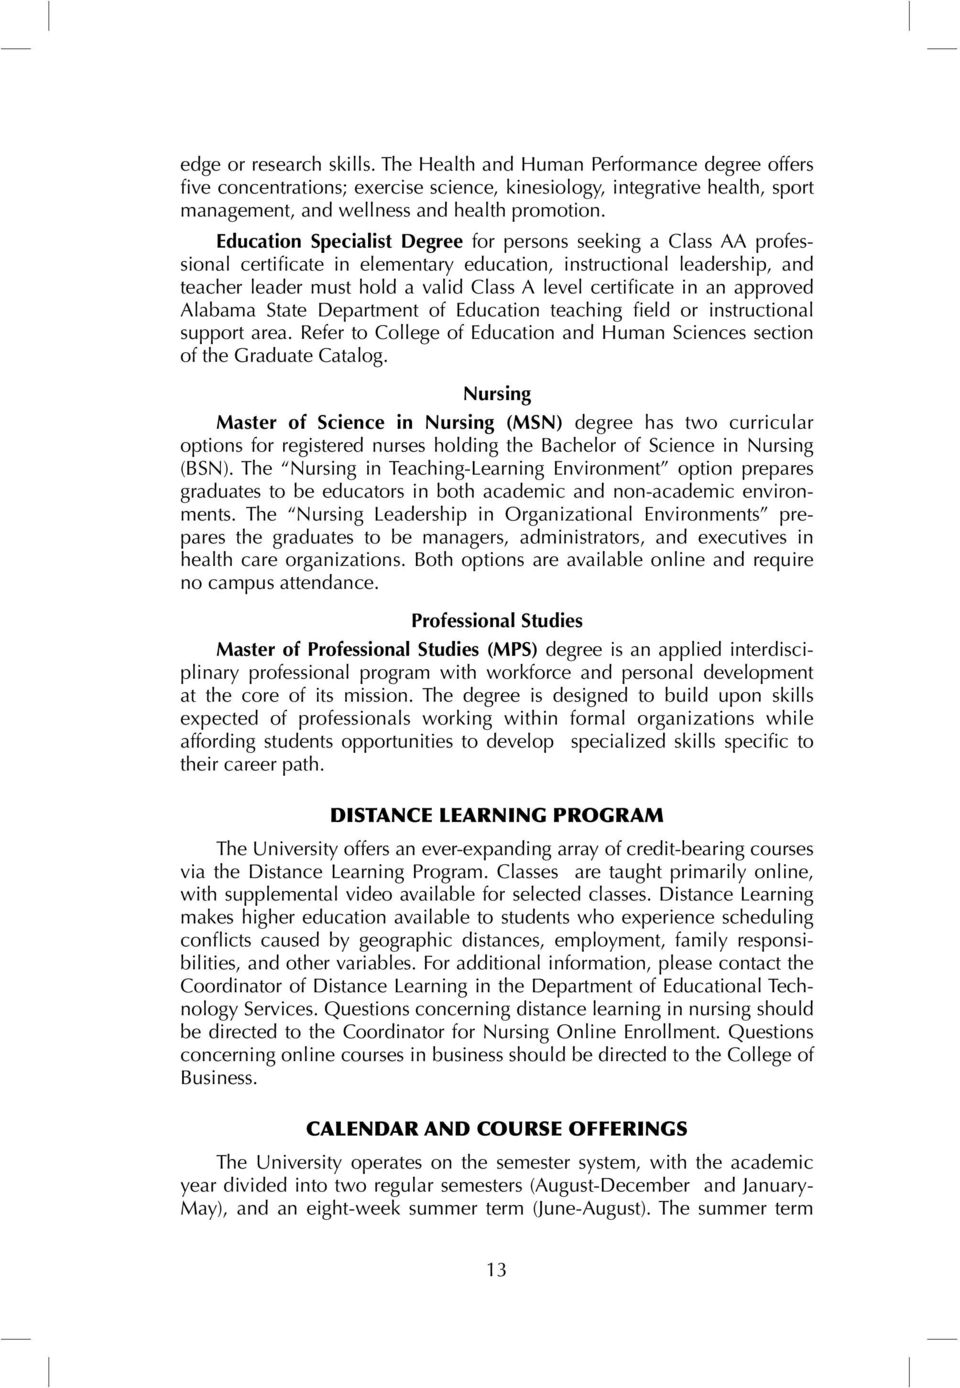 in an approved Alabama State Department of Education teaching field or instructional support area. Refer to College of Education and Human Sciences section of the Graduate Catalog.